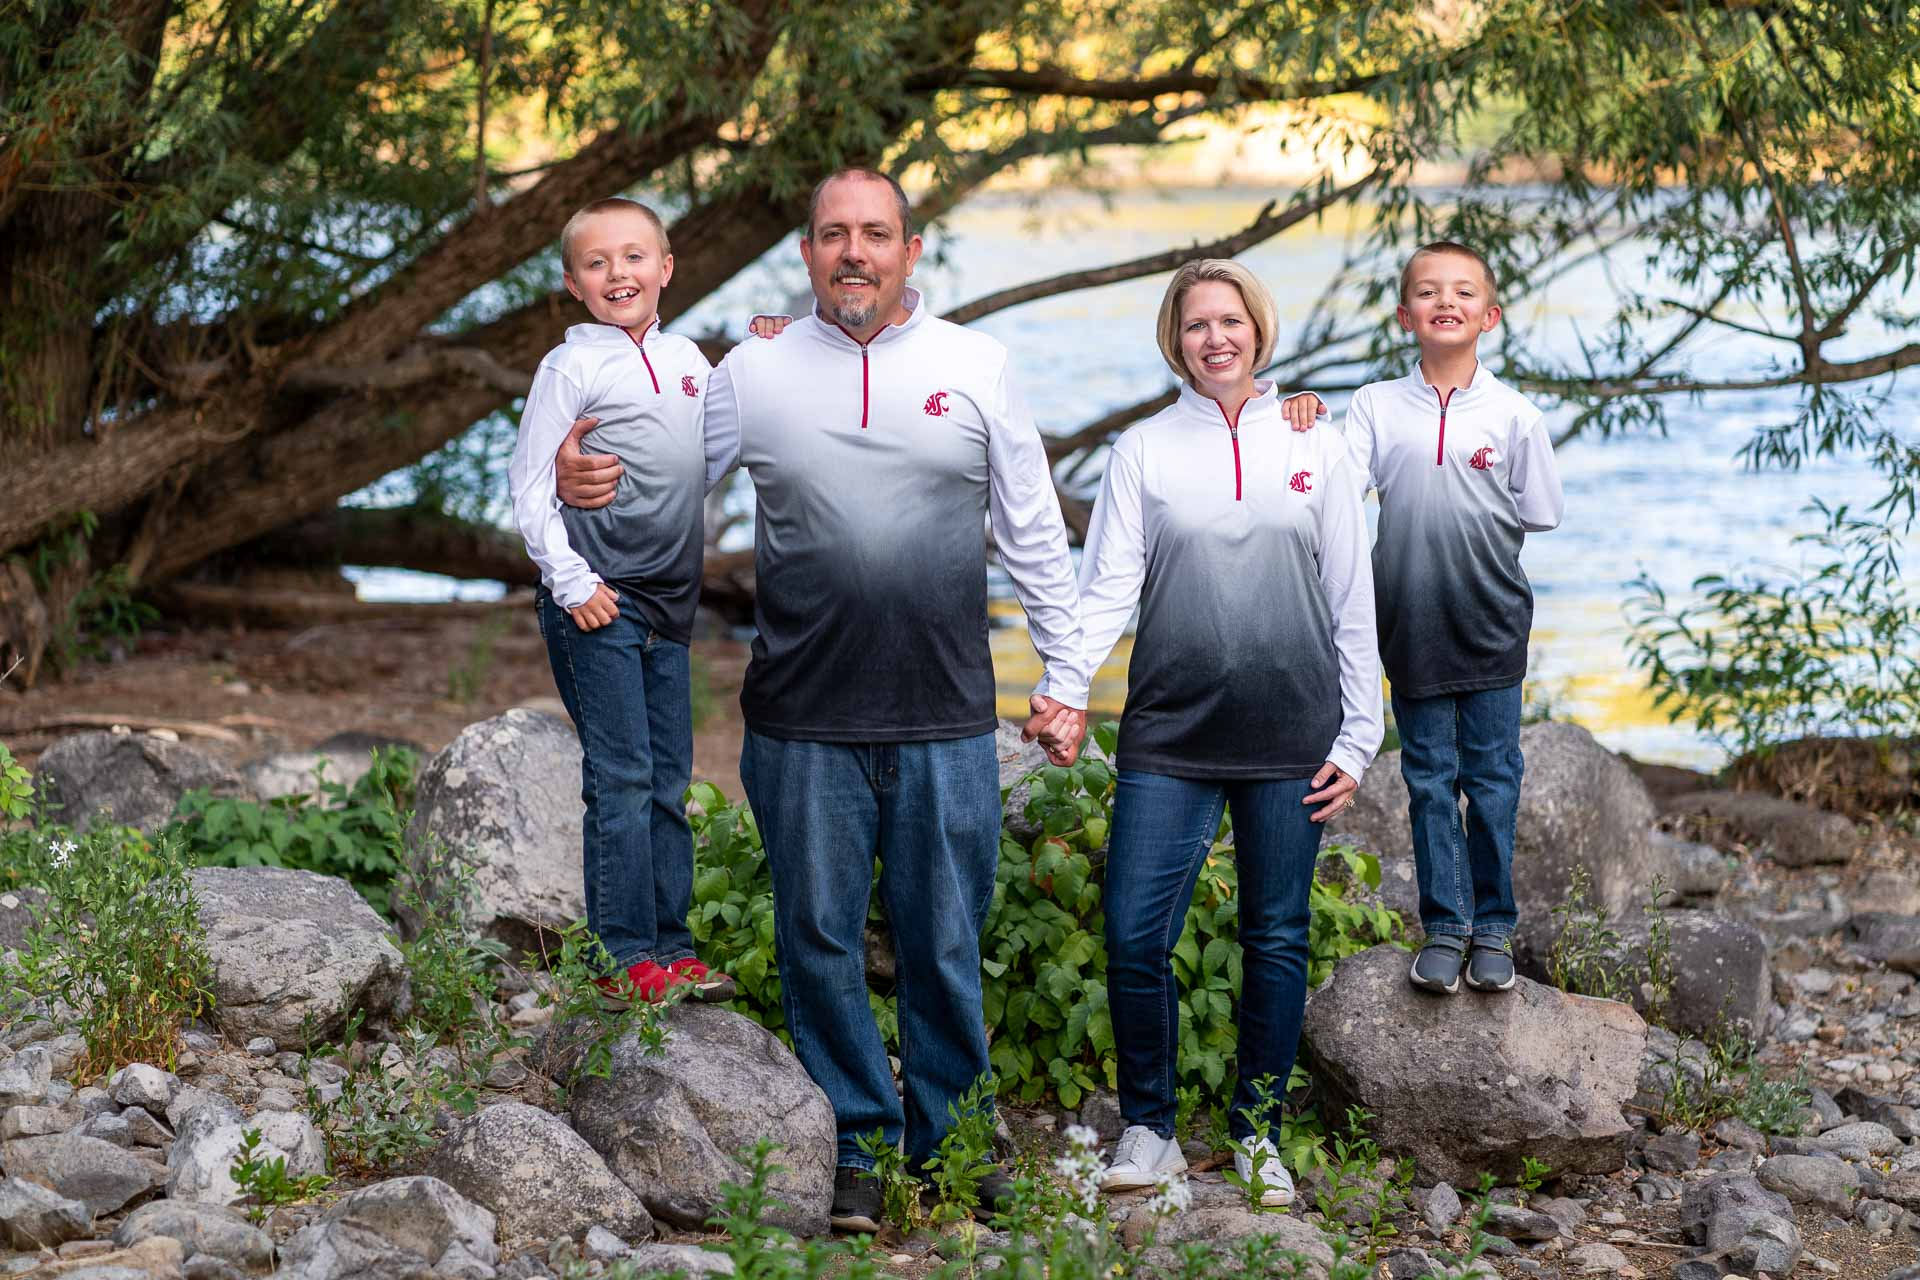 outdoor family photo session in Spokane WA Franklin Photography Studio